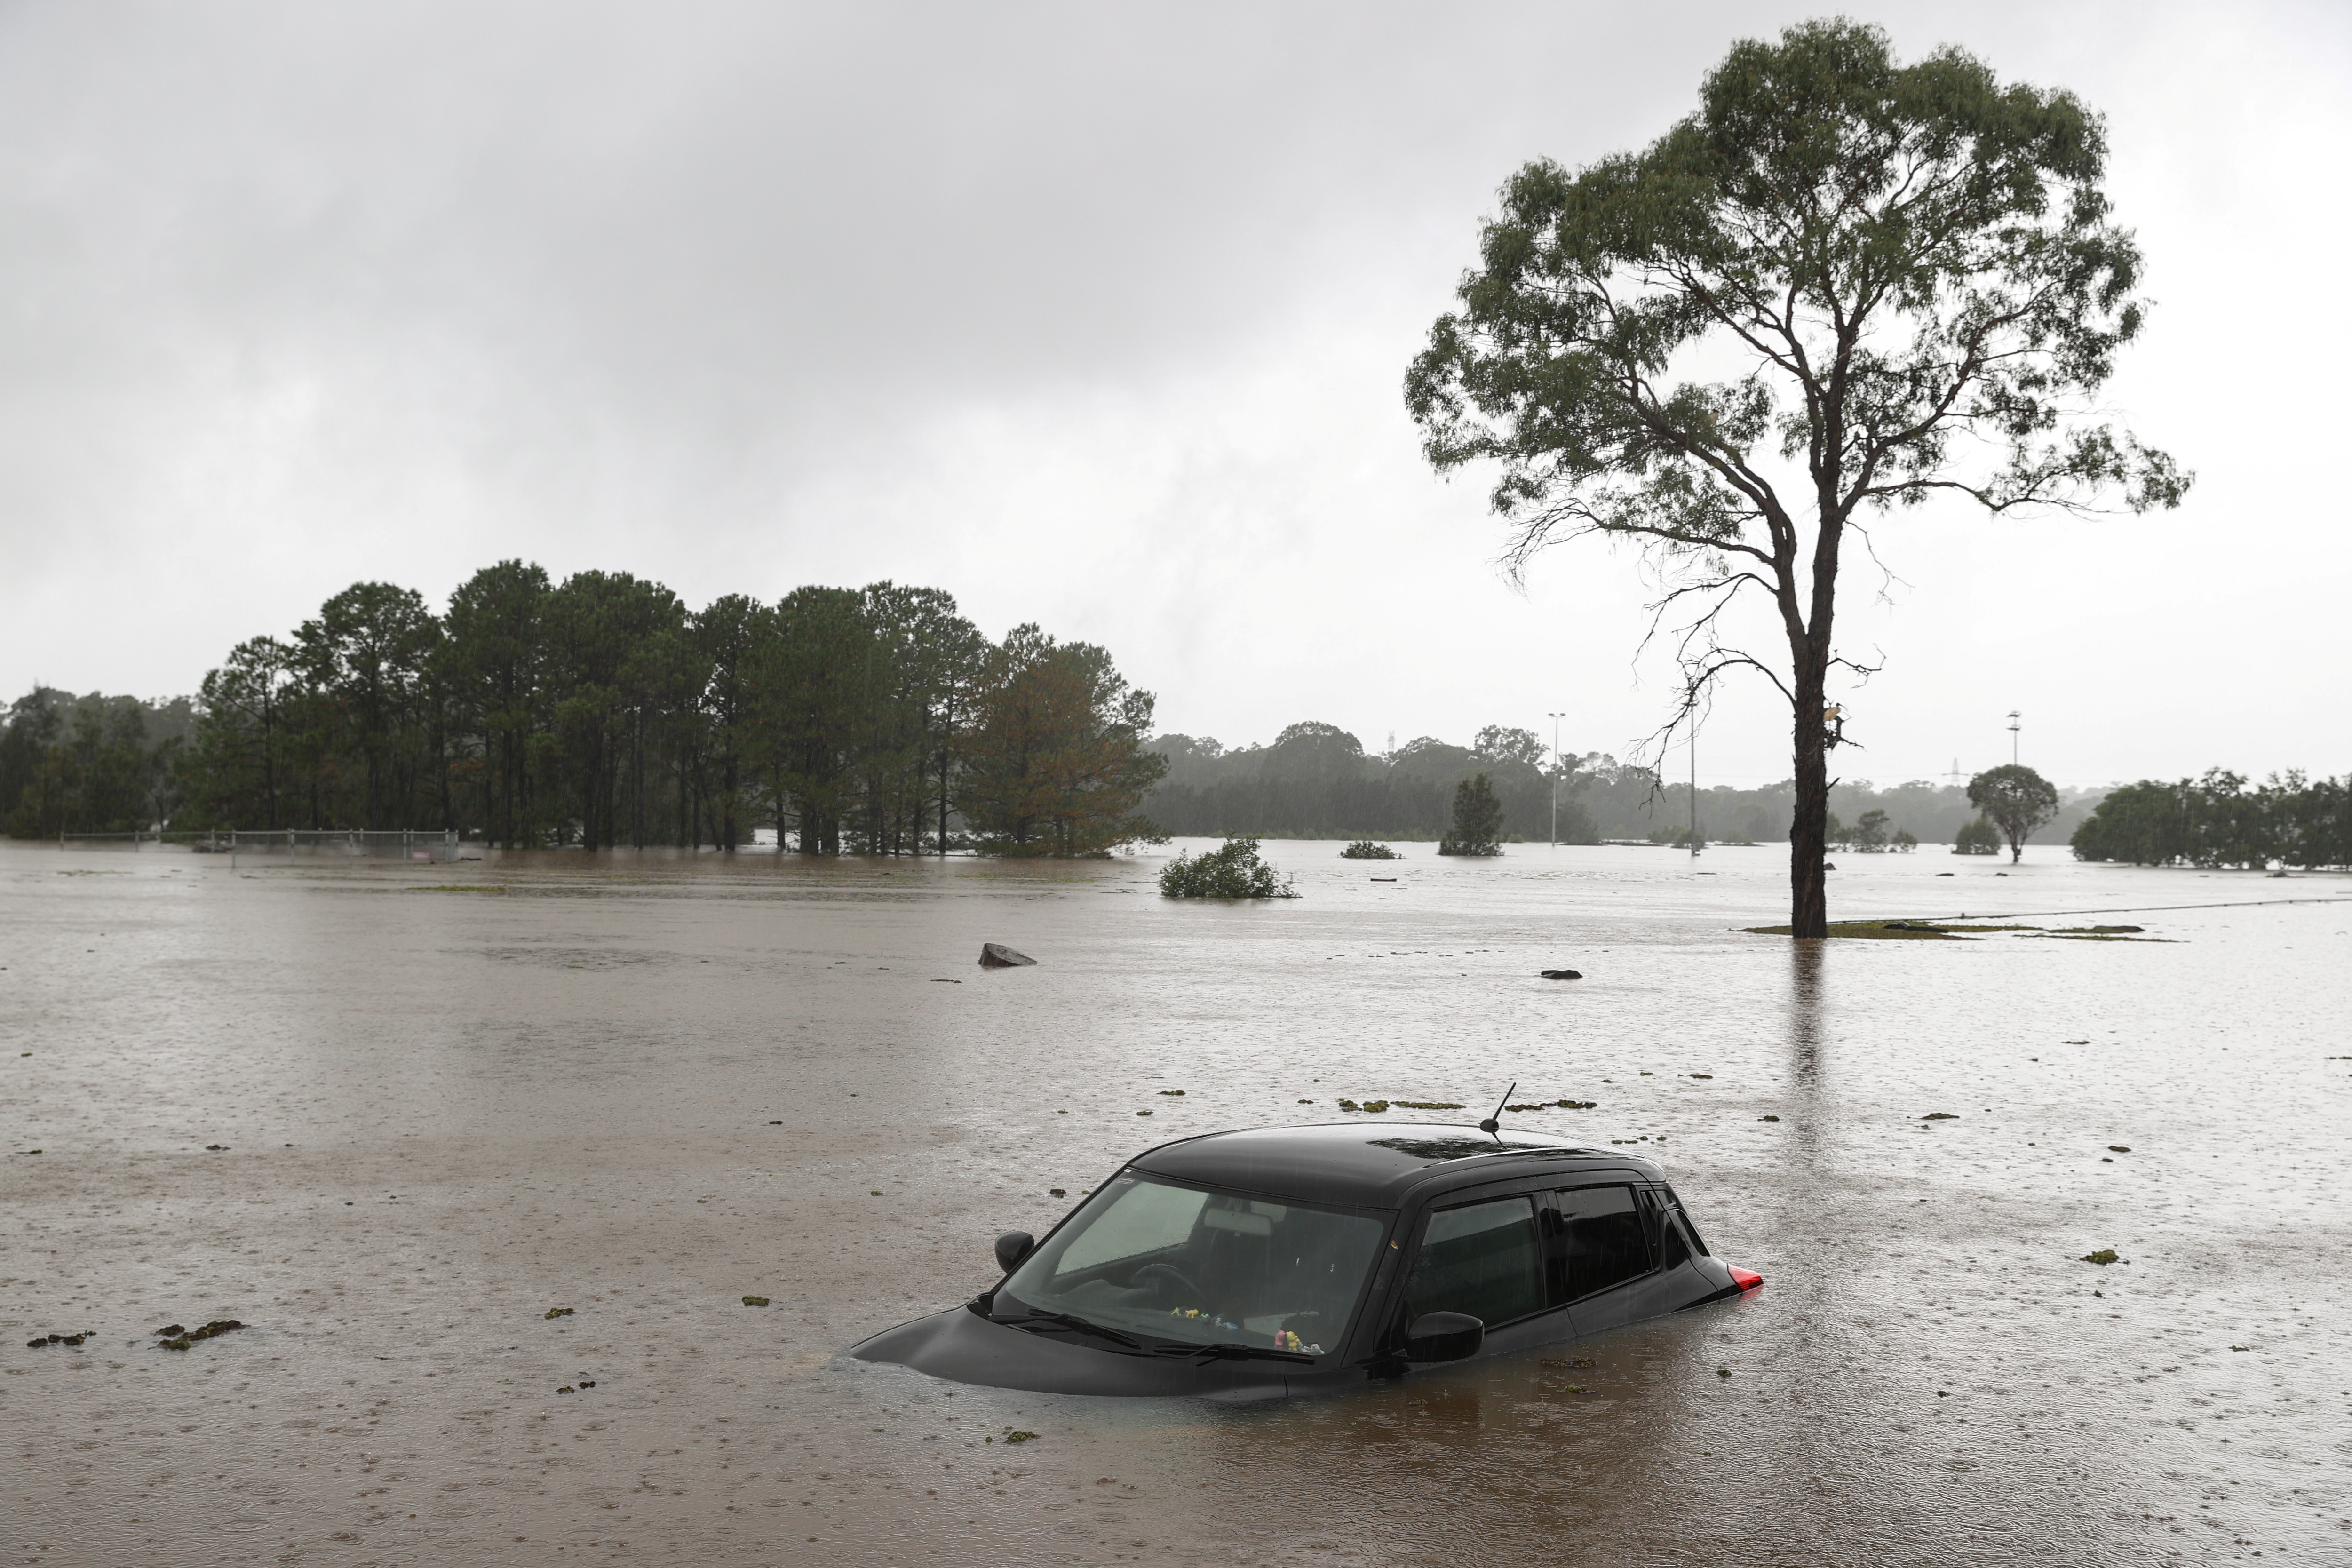 A partially submerged car is seen abandoned in floodwaters in the suburb of Windsor as the state of New South Wales experiences widespread flooding and severe weather, in Sydney, Australia, March 22, 2021.  REUTERS/Loren Elliott